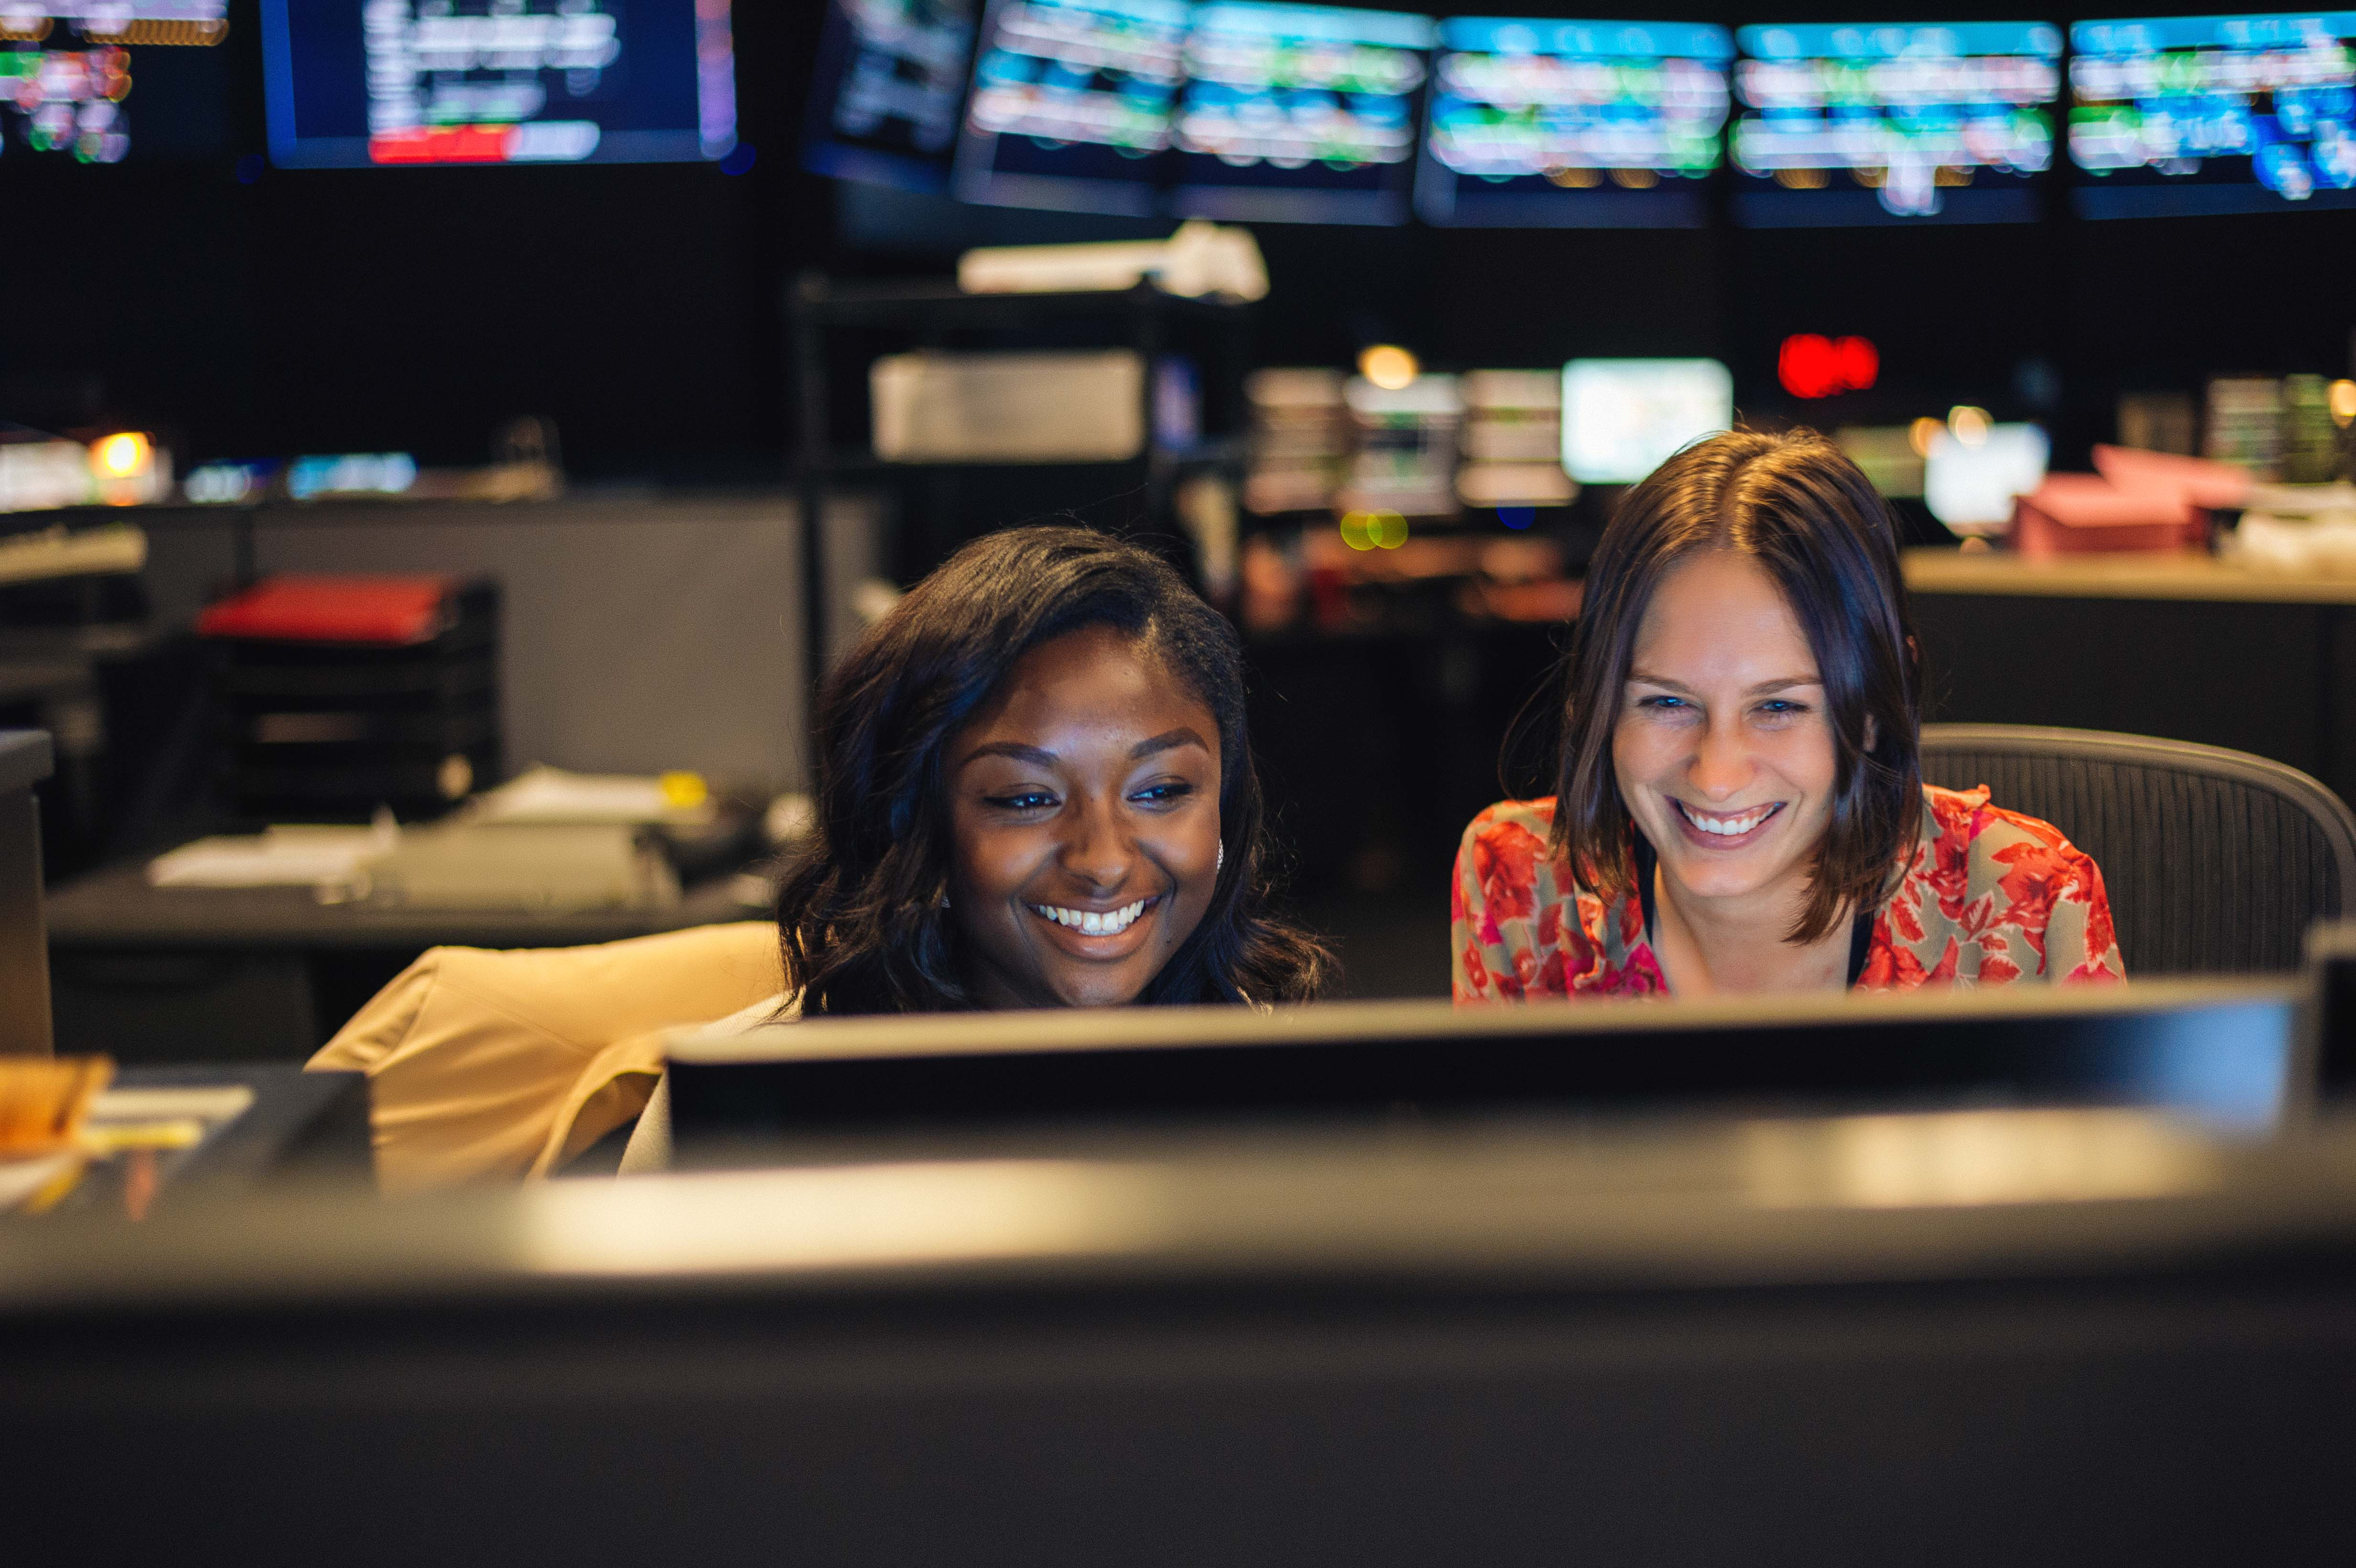 Tweeting daily from Metro's Rail Operations Center are Alexia Hinton, left, and Lily Allen. Photo: Steve Hymon/Metro.